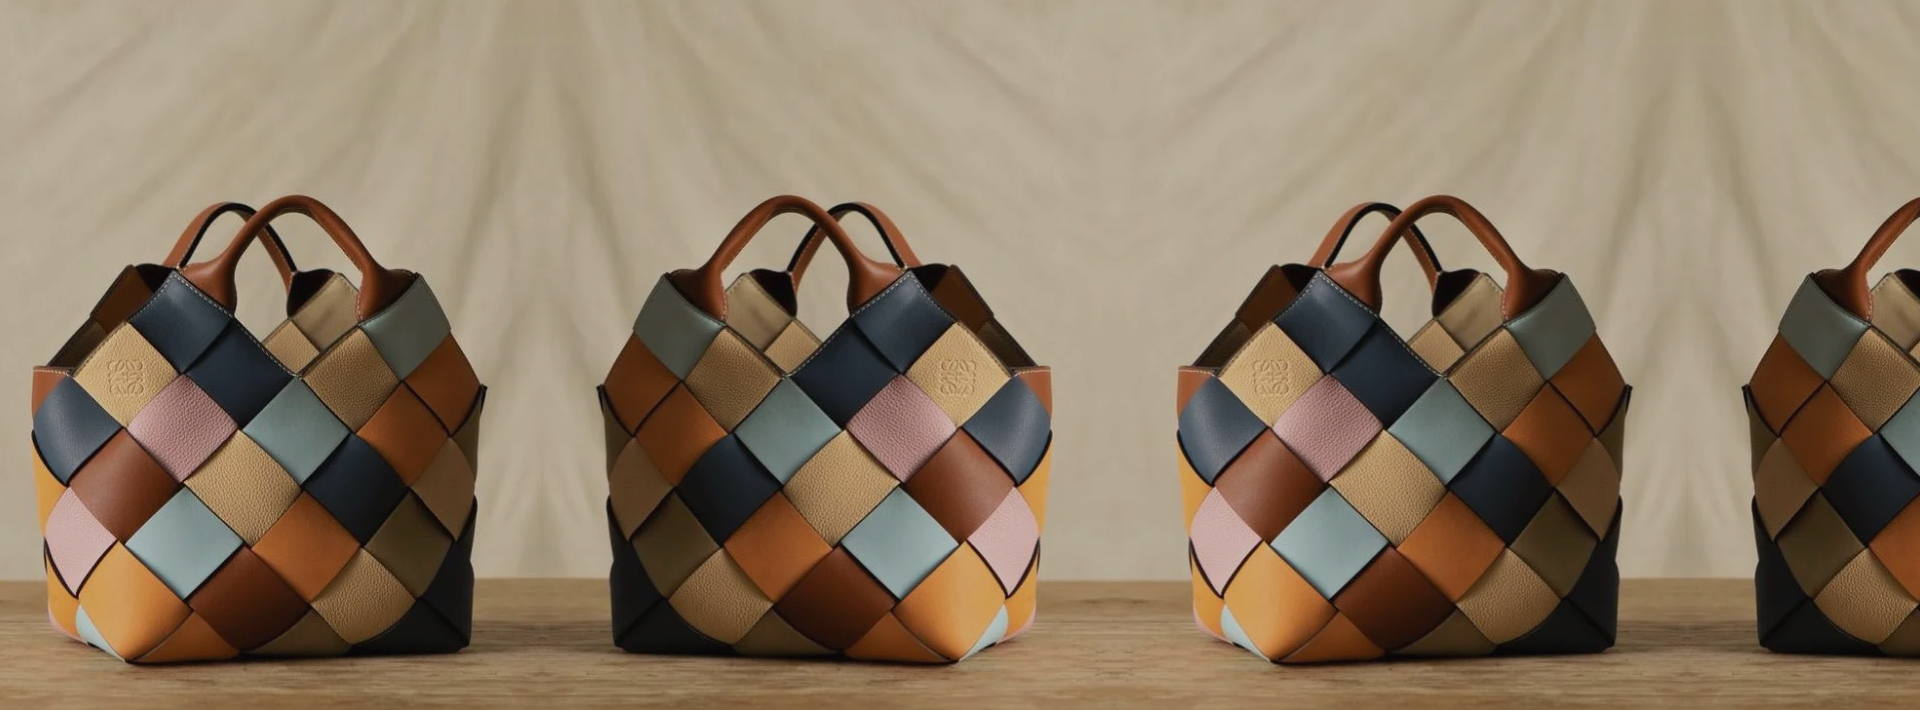 LOEWE launched their responsibly-made bags with the Surplus Project.